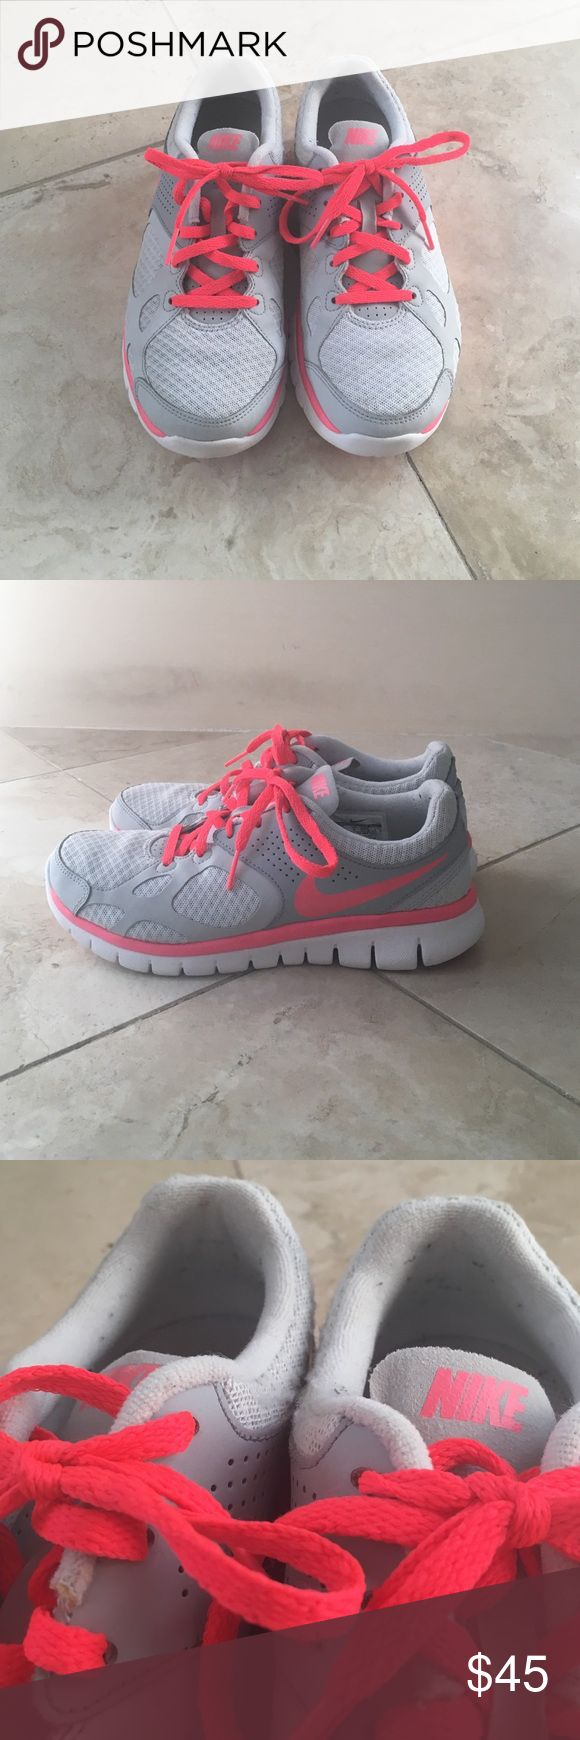 Women's Gray and Coral Nike Sneakers Women's US 6.5, UK 4, EUR 37.5, cm 23.5. Nike Sneakers. White, gray, and coral. Excellent condition. Worn a few times. Small amount of pilling inside shoe by heel. Little wear on bottom. Nike Shoes Sneakers